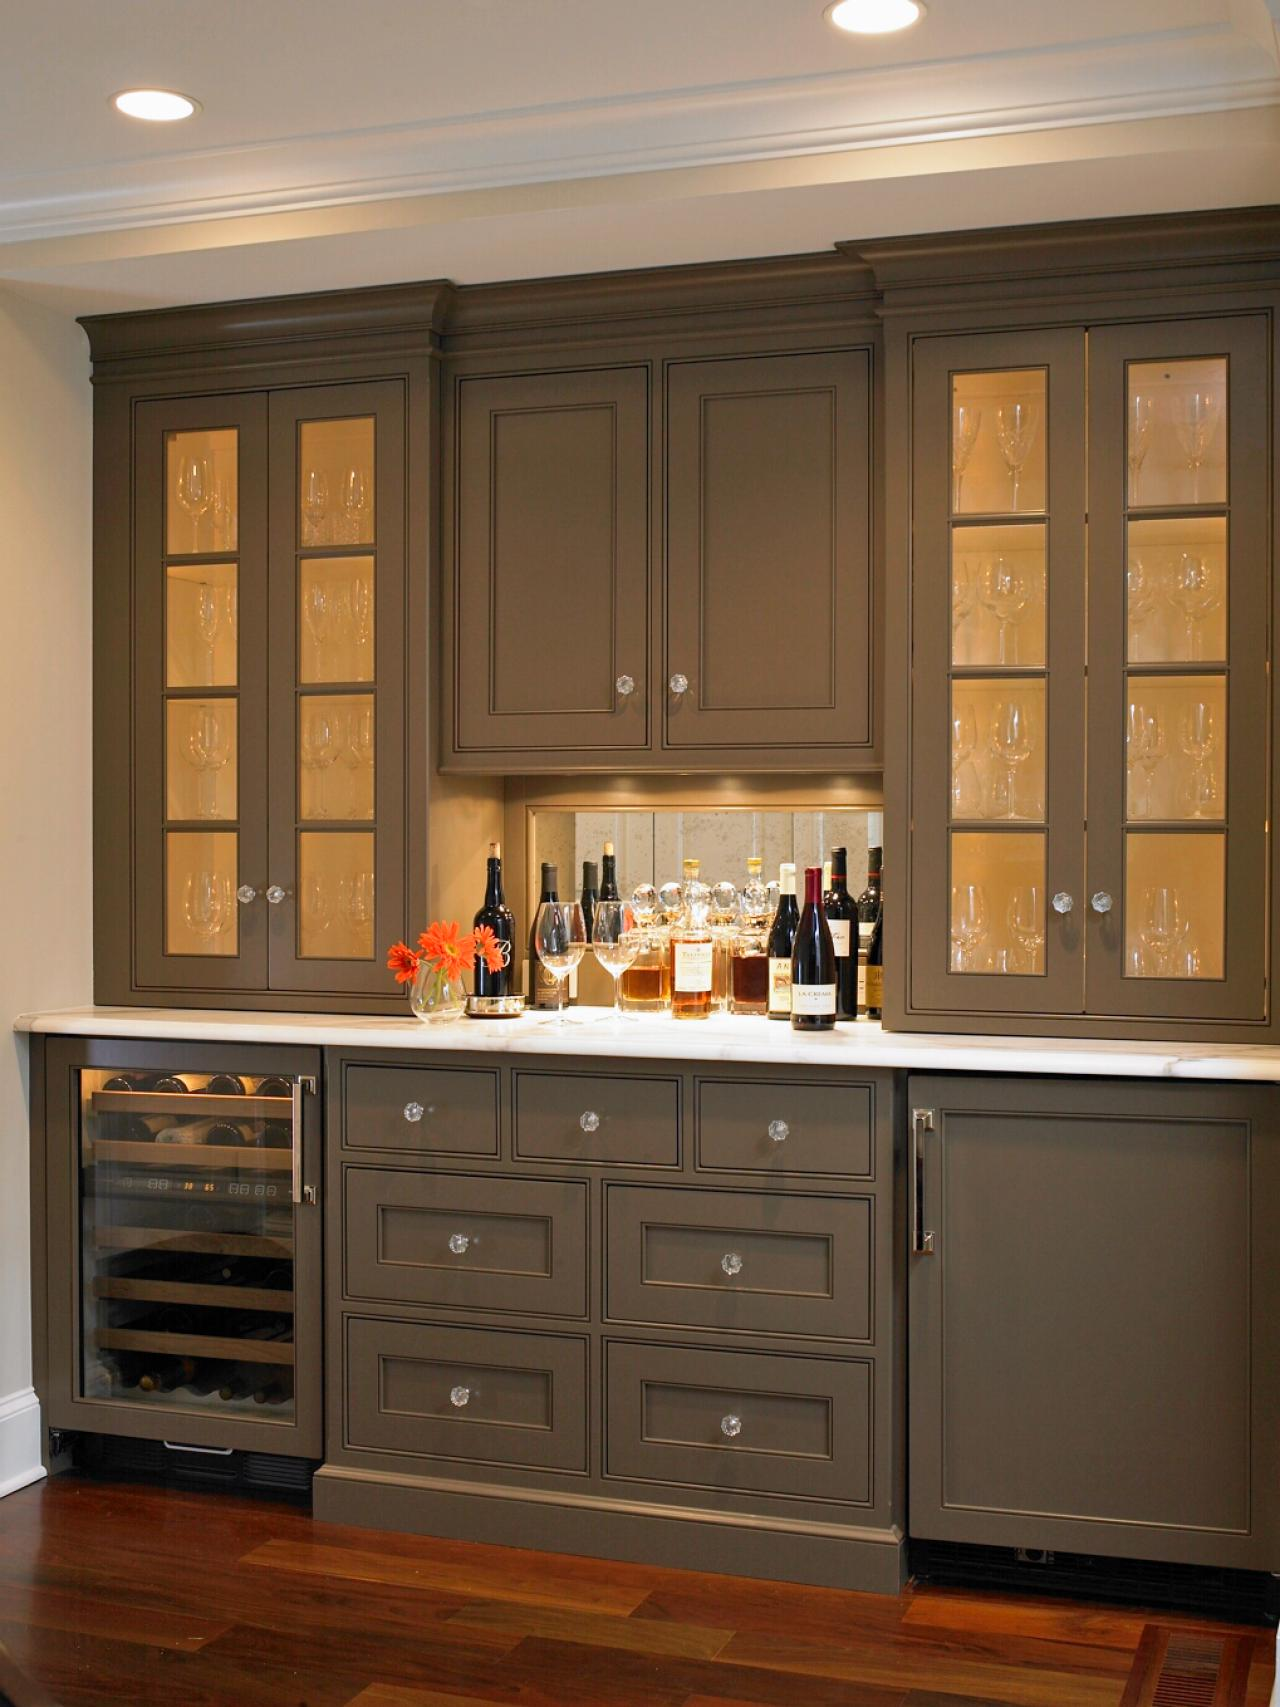 Espresso kitchen cabinets pictures ideas tips from for Hgtv kitchens